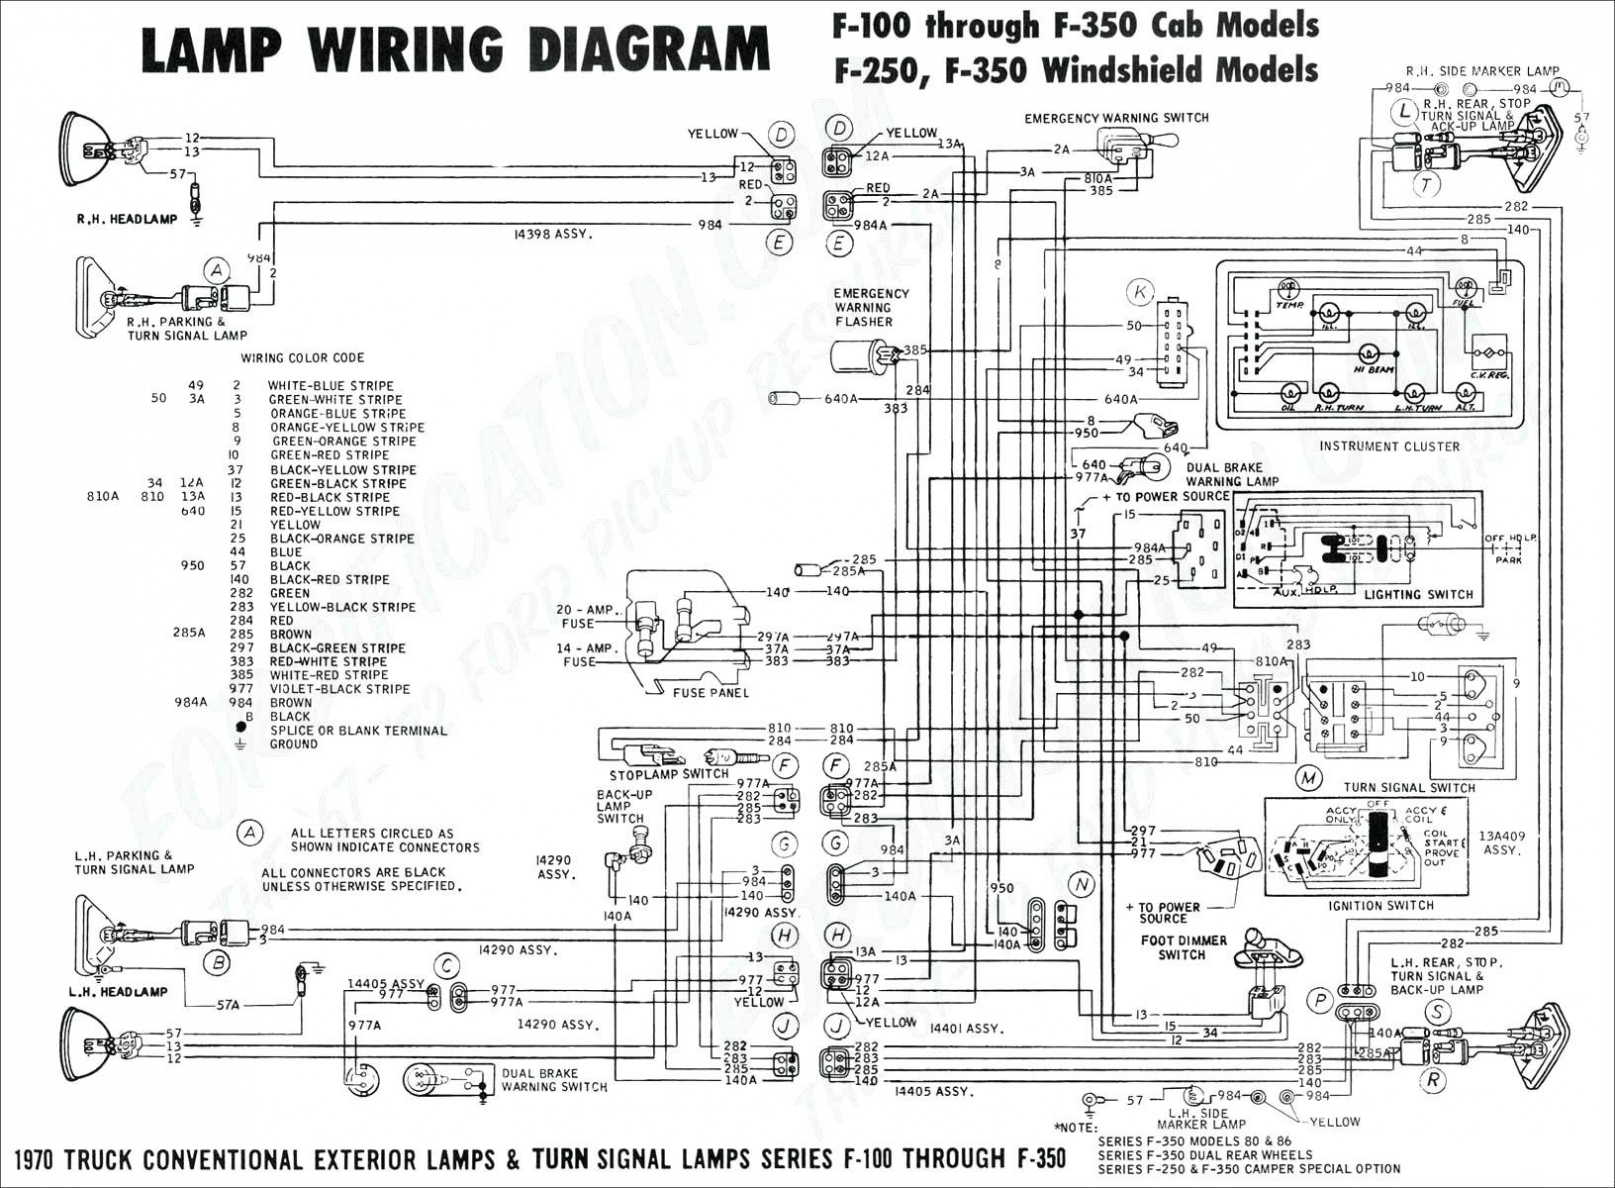 Ford F650 ke Light Wiring - Wiring Diagram & Cable Management F Wiring Diagram Stereo on